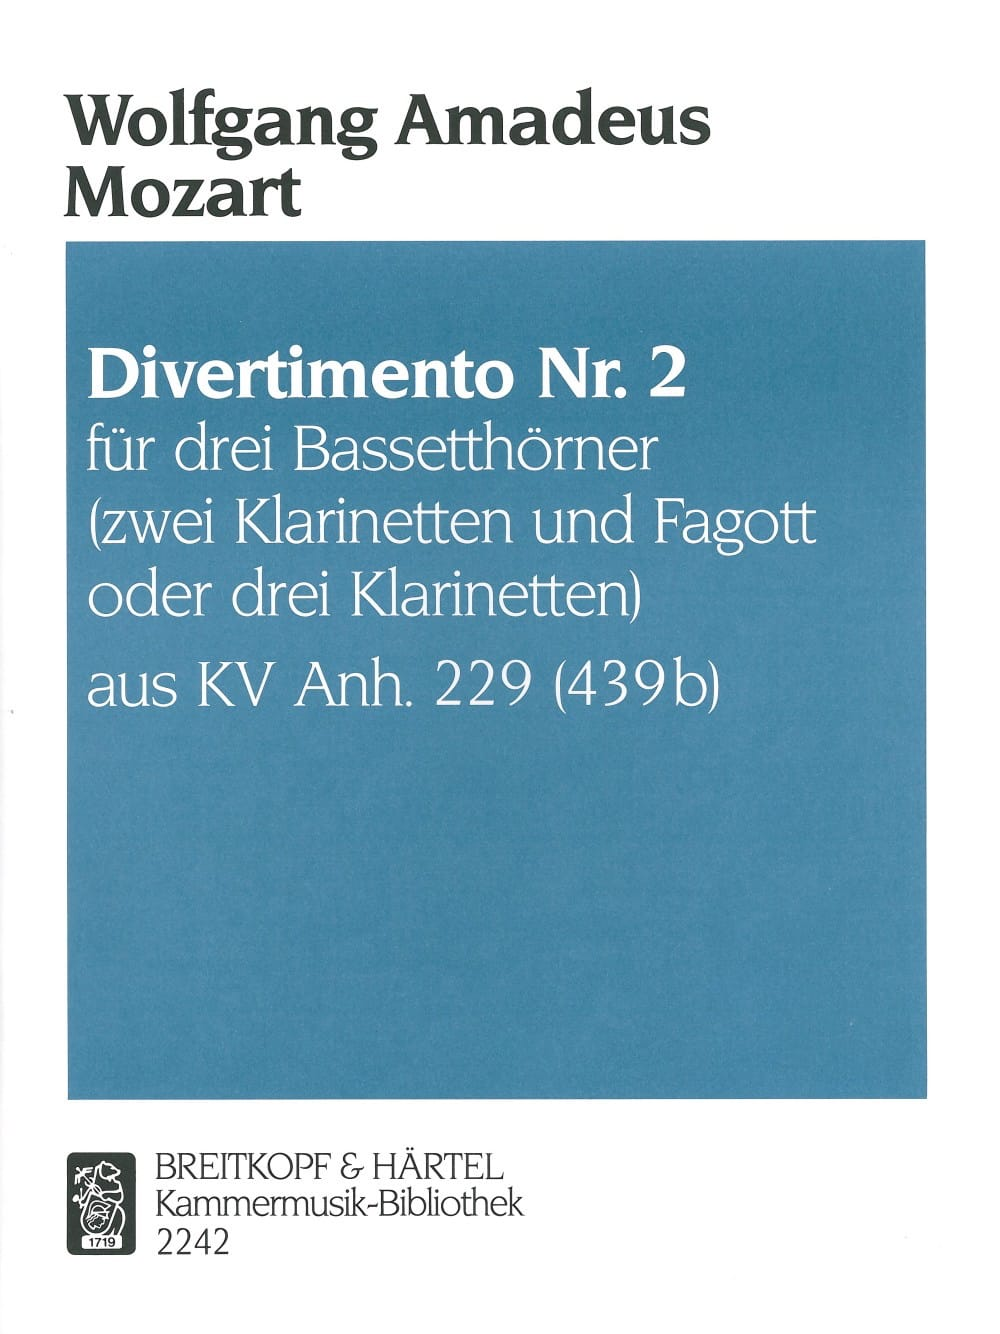 MOZART - Divertimento Nr. 2 - 3 Bassetthörner 2 Klar. Fag. / 3 Klar. - Partition - di-arezzo.co.uk